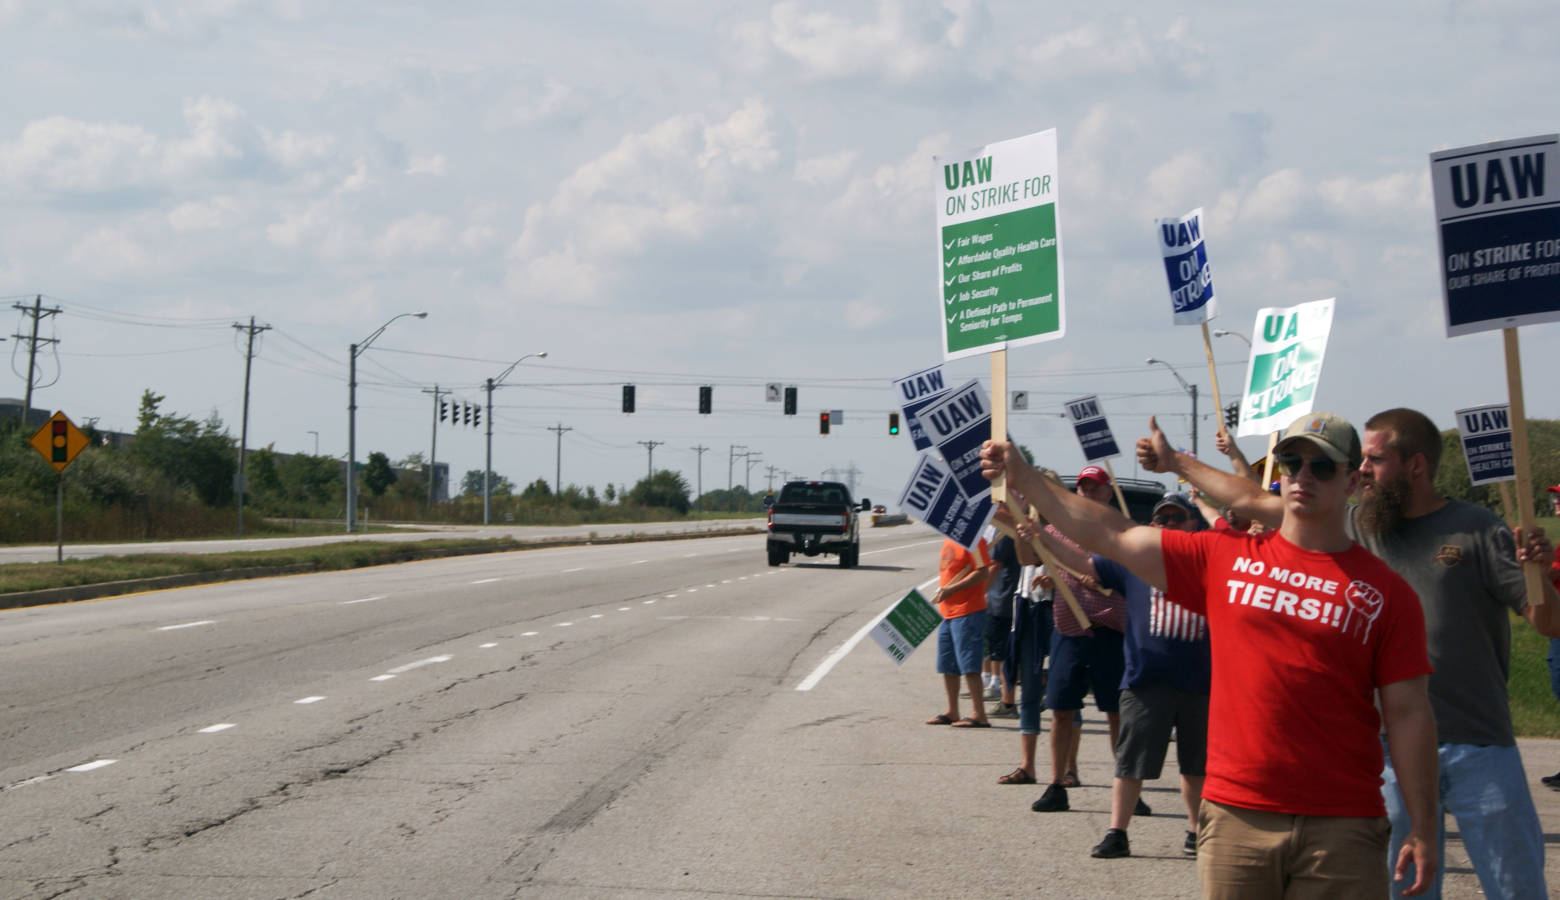 UAW members picket outside the General Motor's Fort Wayne Assembly on Sept. 21. (Samantha Horton/IPB News)